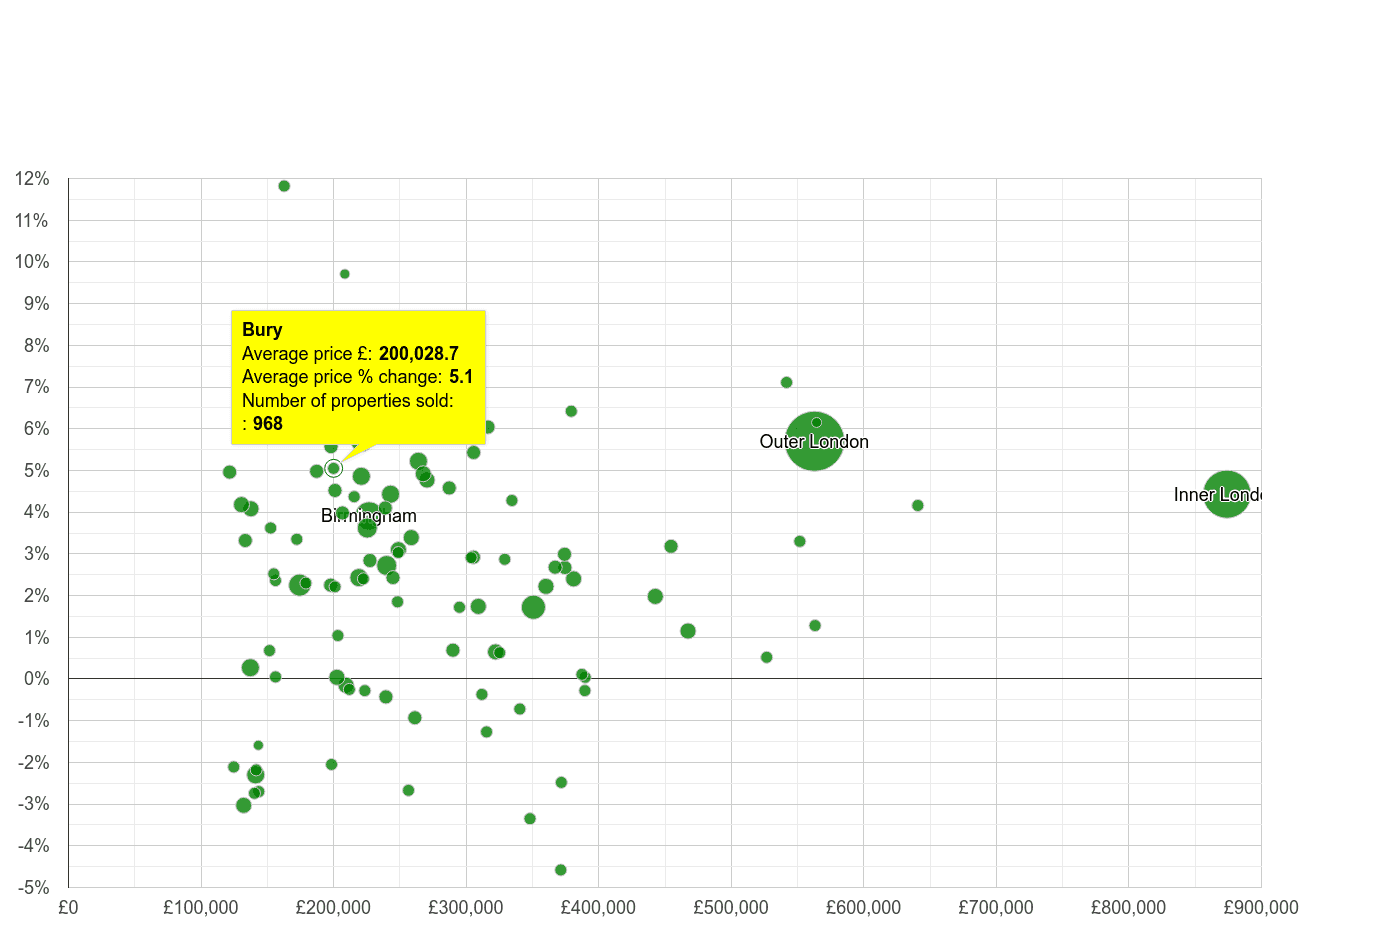 Bury house prices compared to other cities